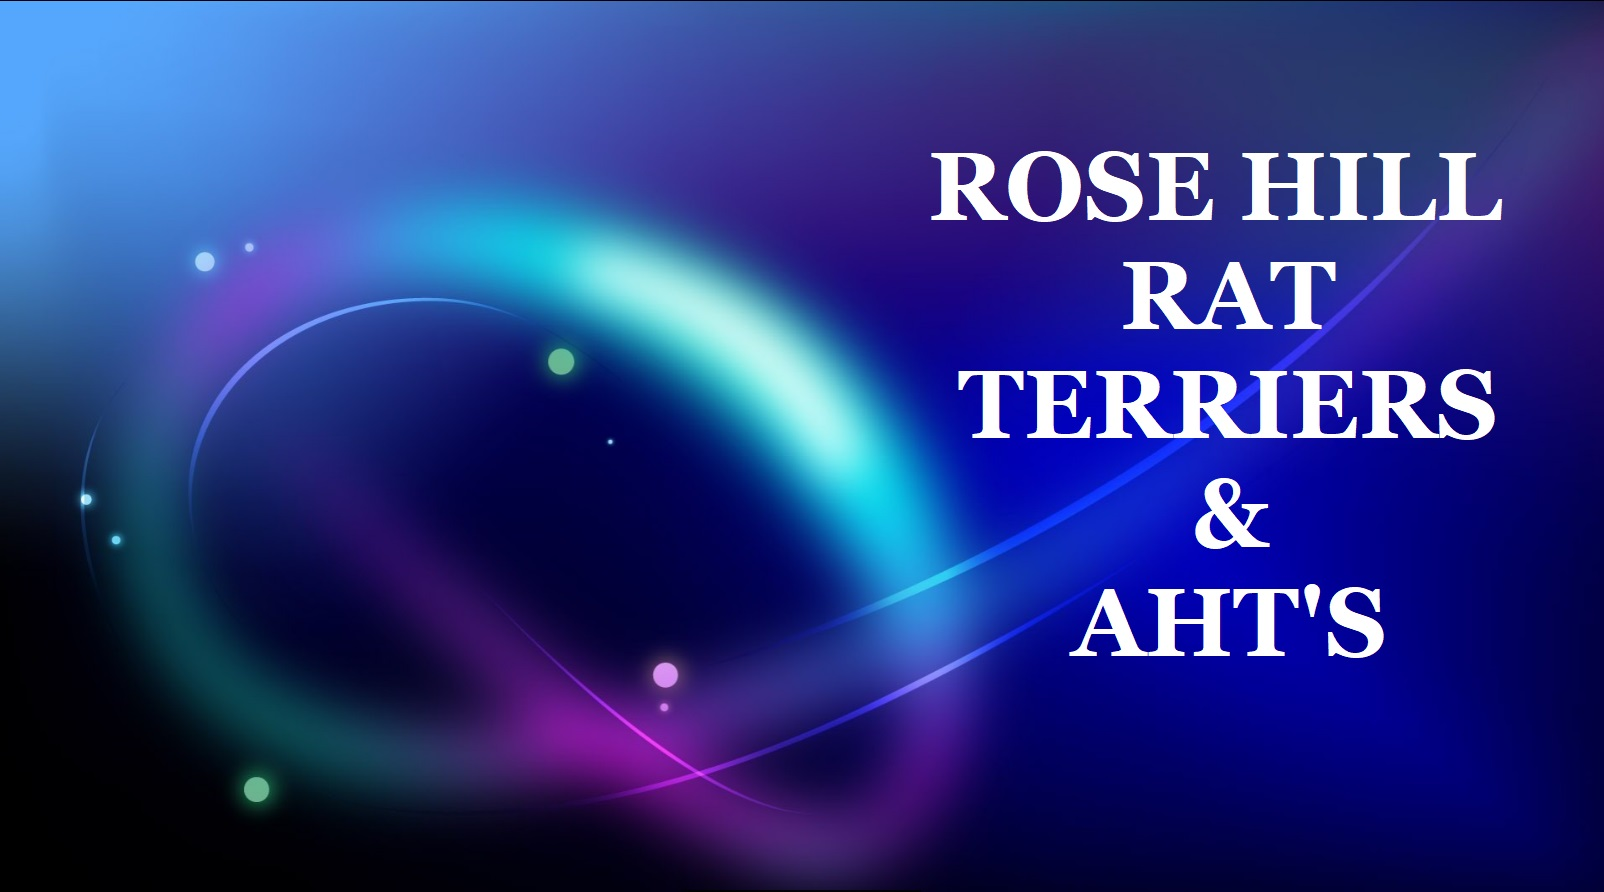 Rose_Hill_Rats_and_AHT_s_Header